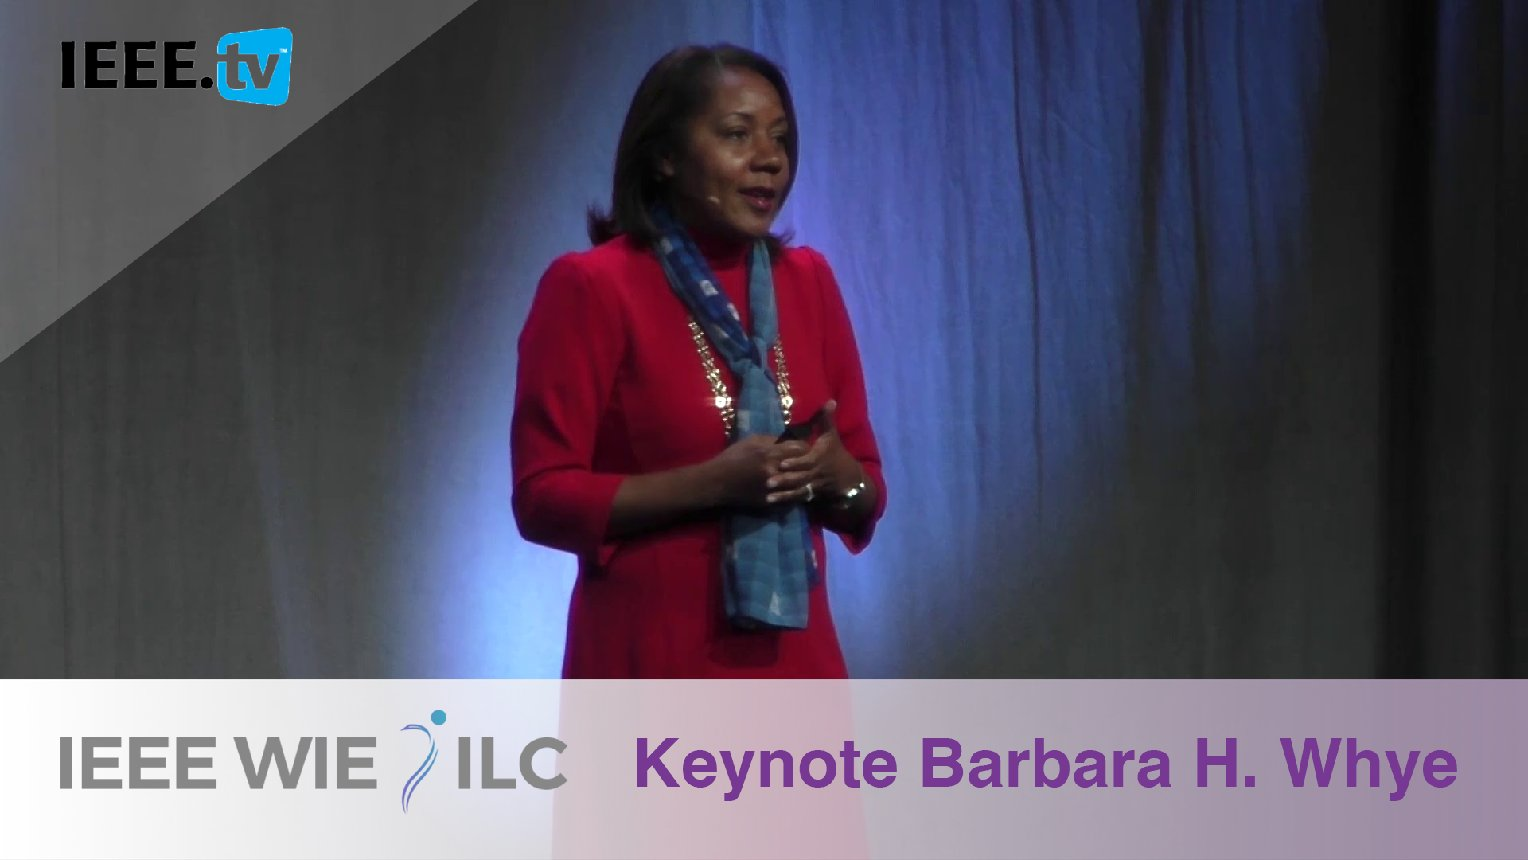 Keynote Barbara H. Whye on Building a Diverse and Inclusive Workplace - IEEE WIE ILC 2017